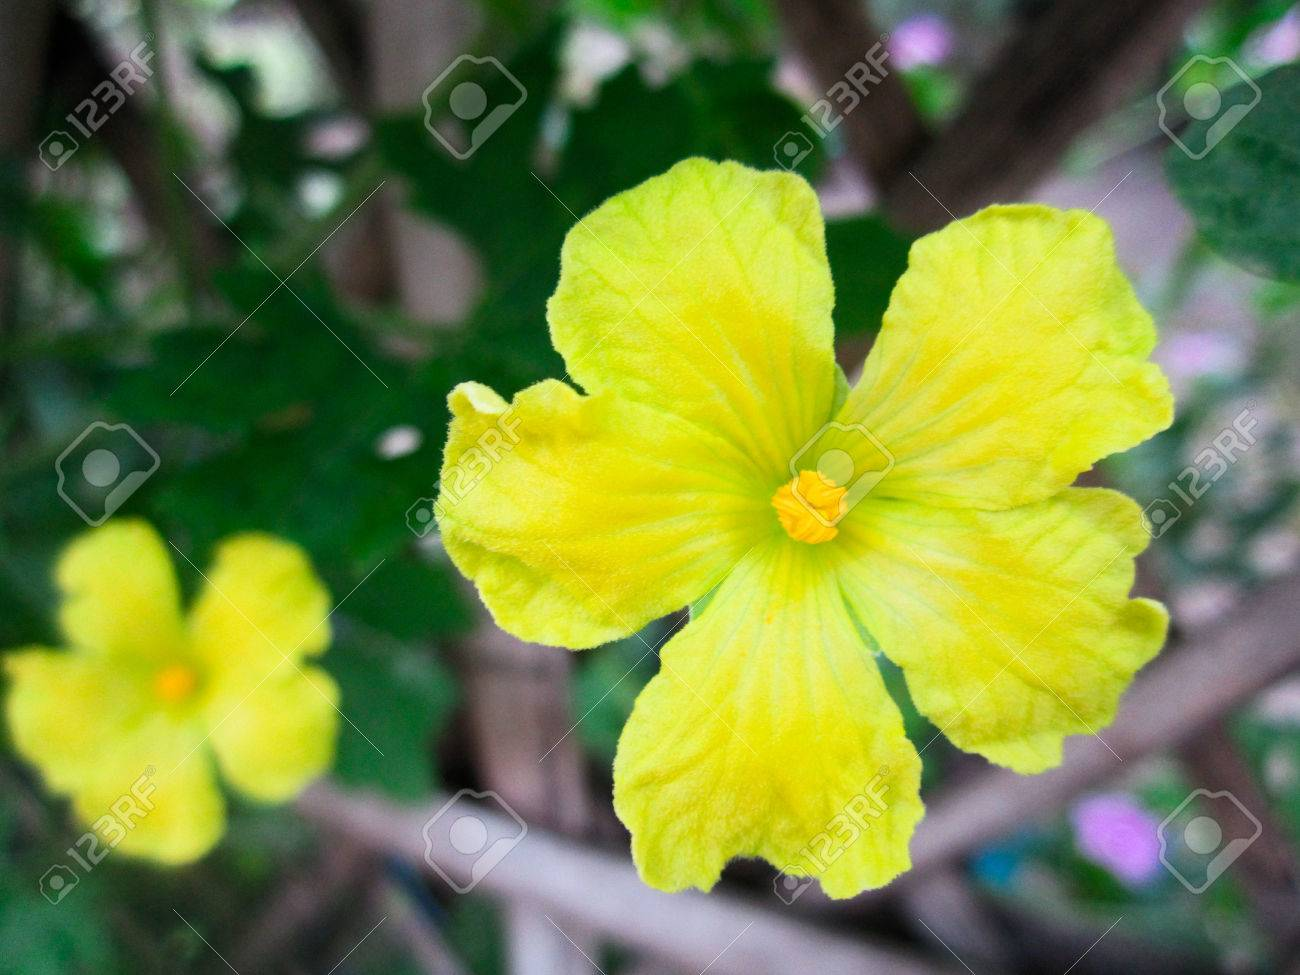 Yellow Gourd Flower Flower Wallpaper Stock Photo Picture And 1300x975